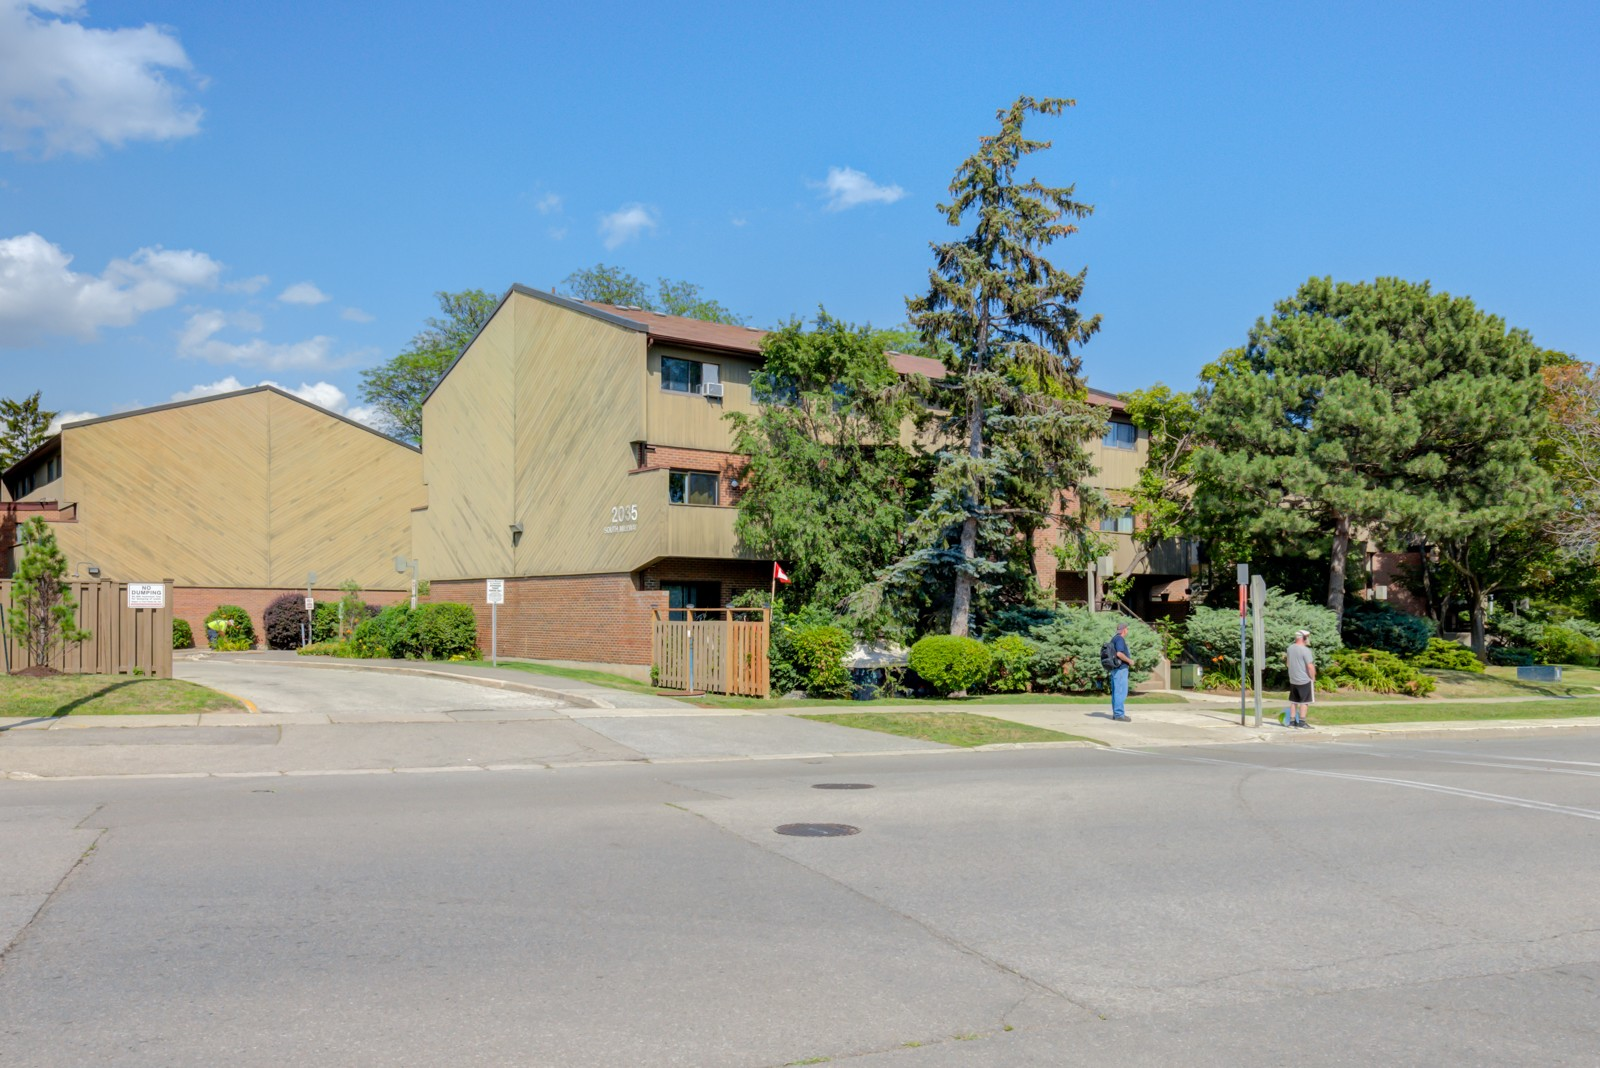 2035 South Millway Townhouses at 2035 South Millway, Mississauga 0